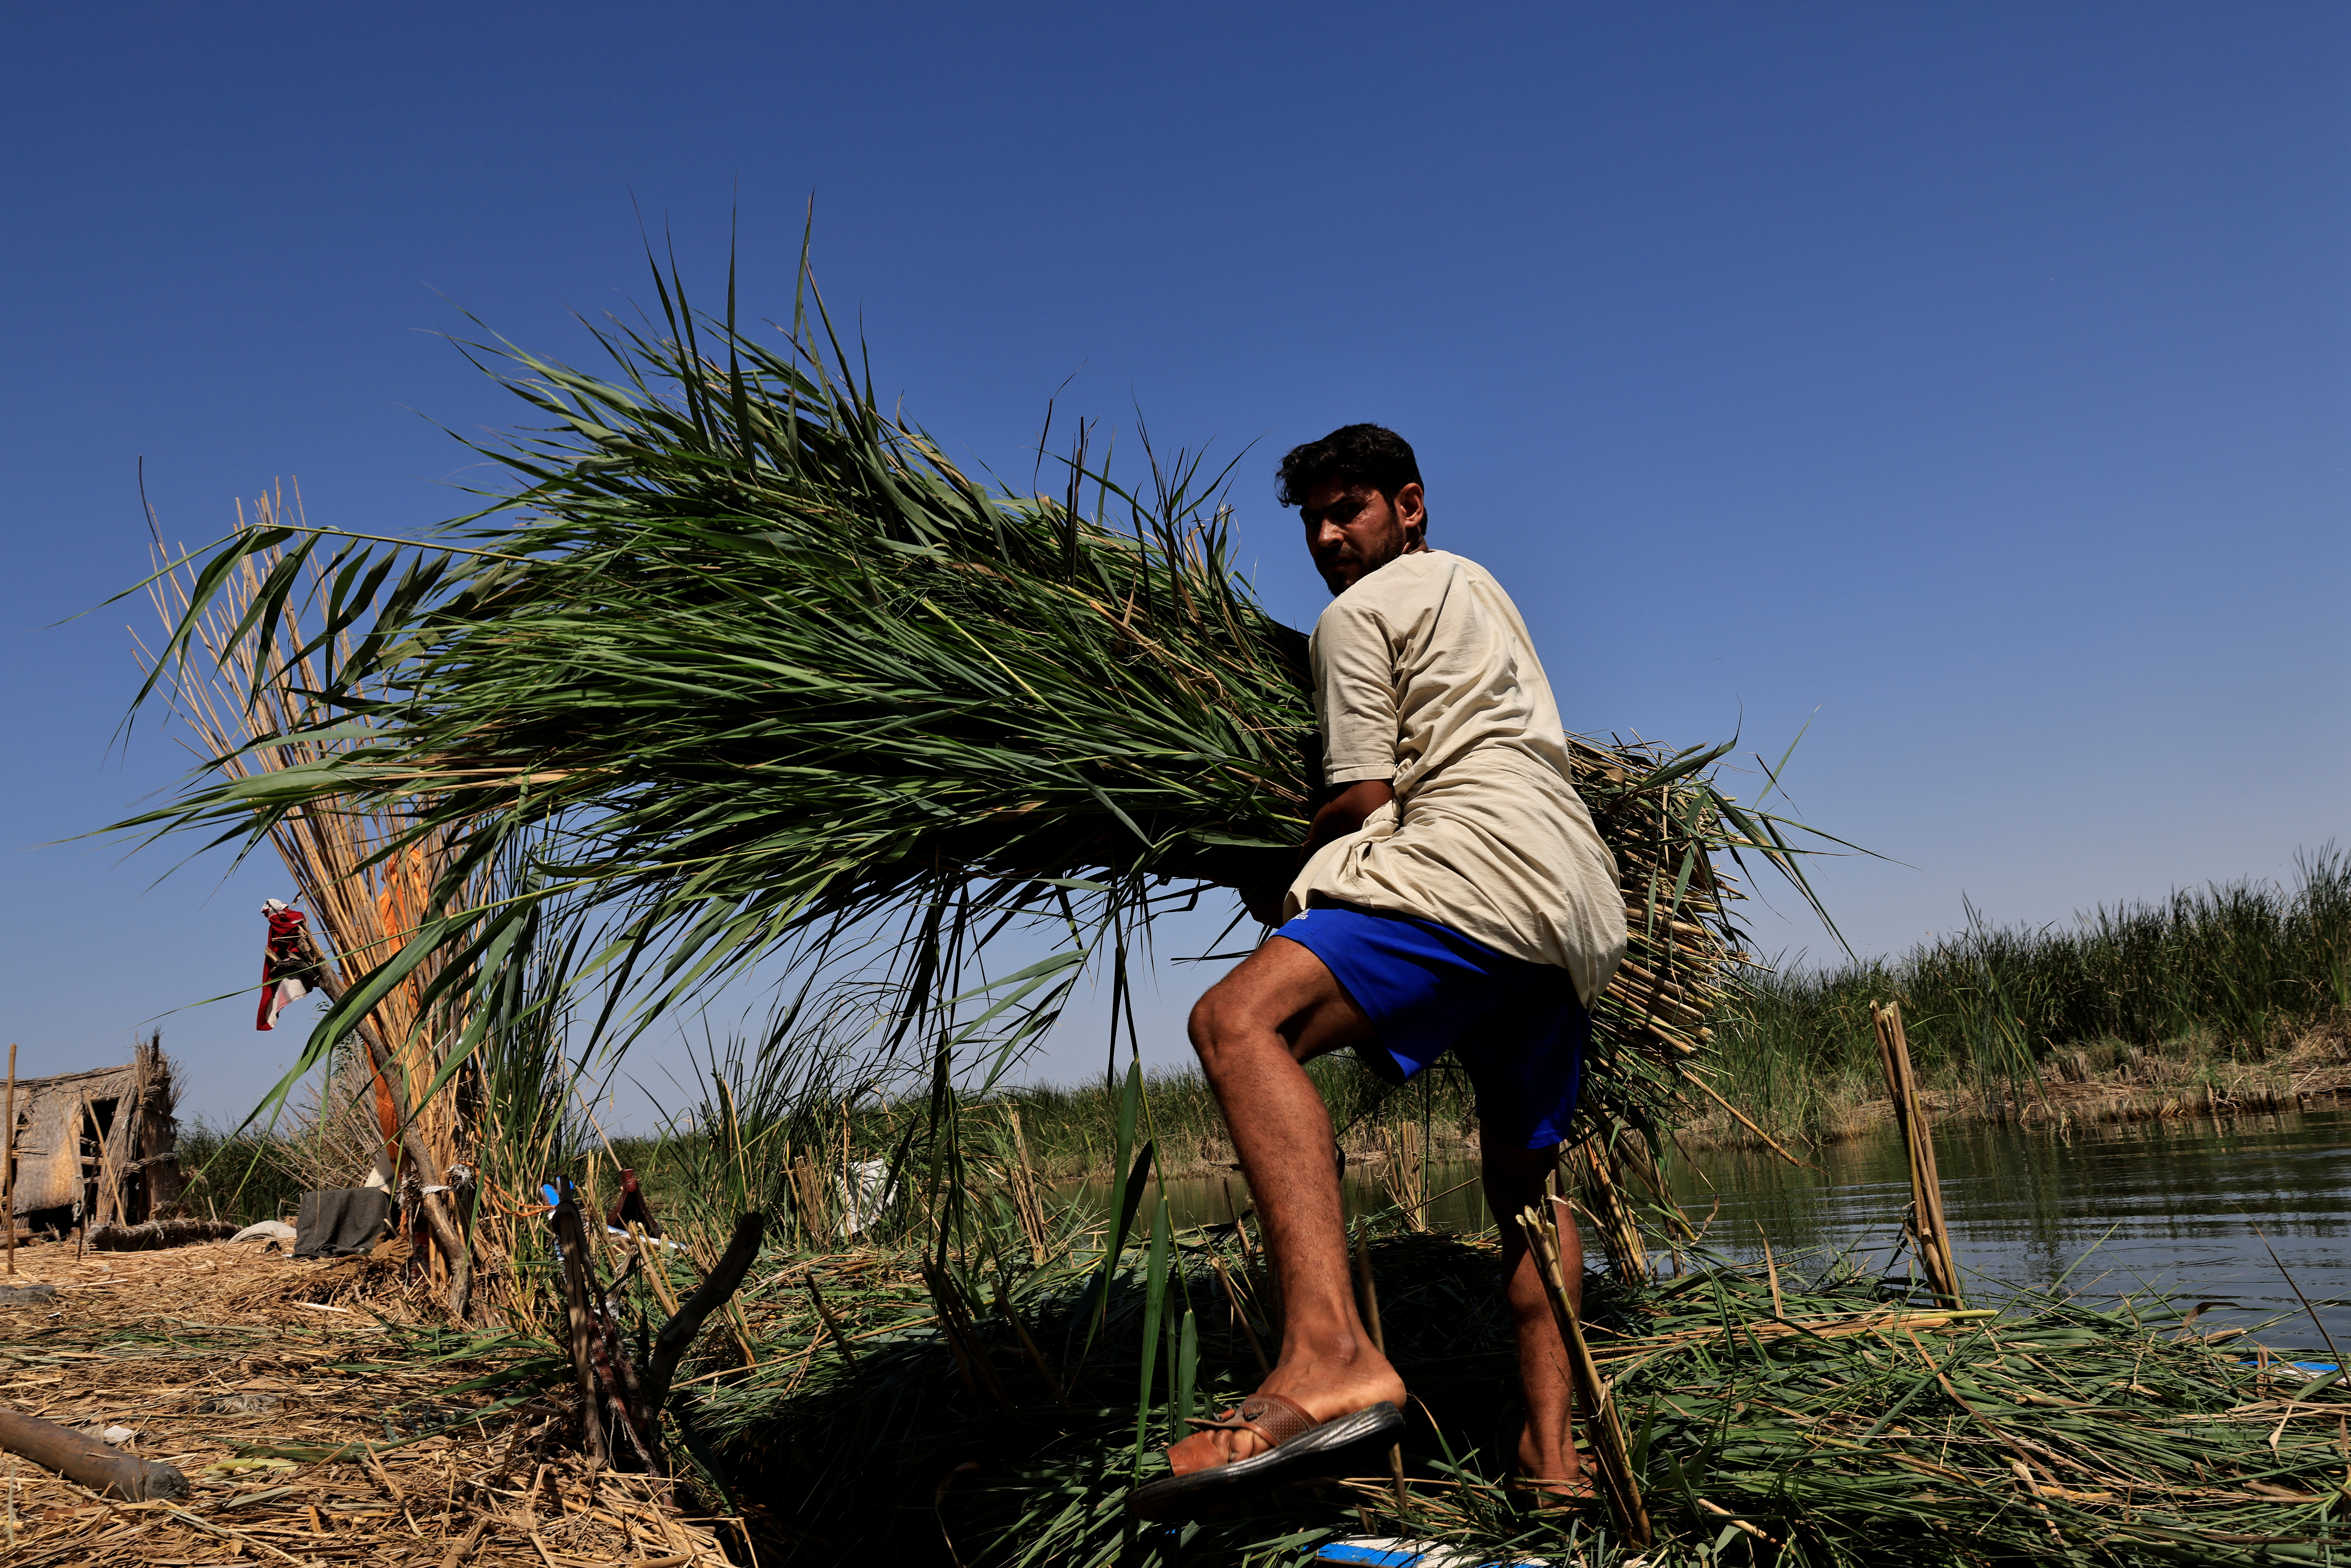 Sabah Thamer al-Baher carries reeds at the Chebayesh marsh, Dhi Qar province, Iraq, July 6, 2021. Iraq's 2020-2021 rainfall season was the second driest in 40 years, according to the United Nations, causing the salinity of the wetlands to rise to dangerous levels. Animals fell sick and died, and Baher was forced to buy fresh drinking water for his own herd of around 20 buffaloes, his only source of income. Another drought is predicted for 2023 as climate change, pollution and upstream damming keep Iraq trapped in a cycle of recurring water crises.